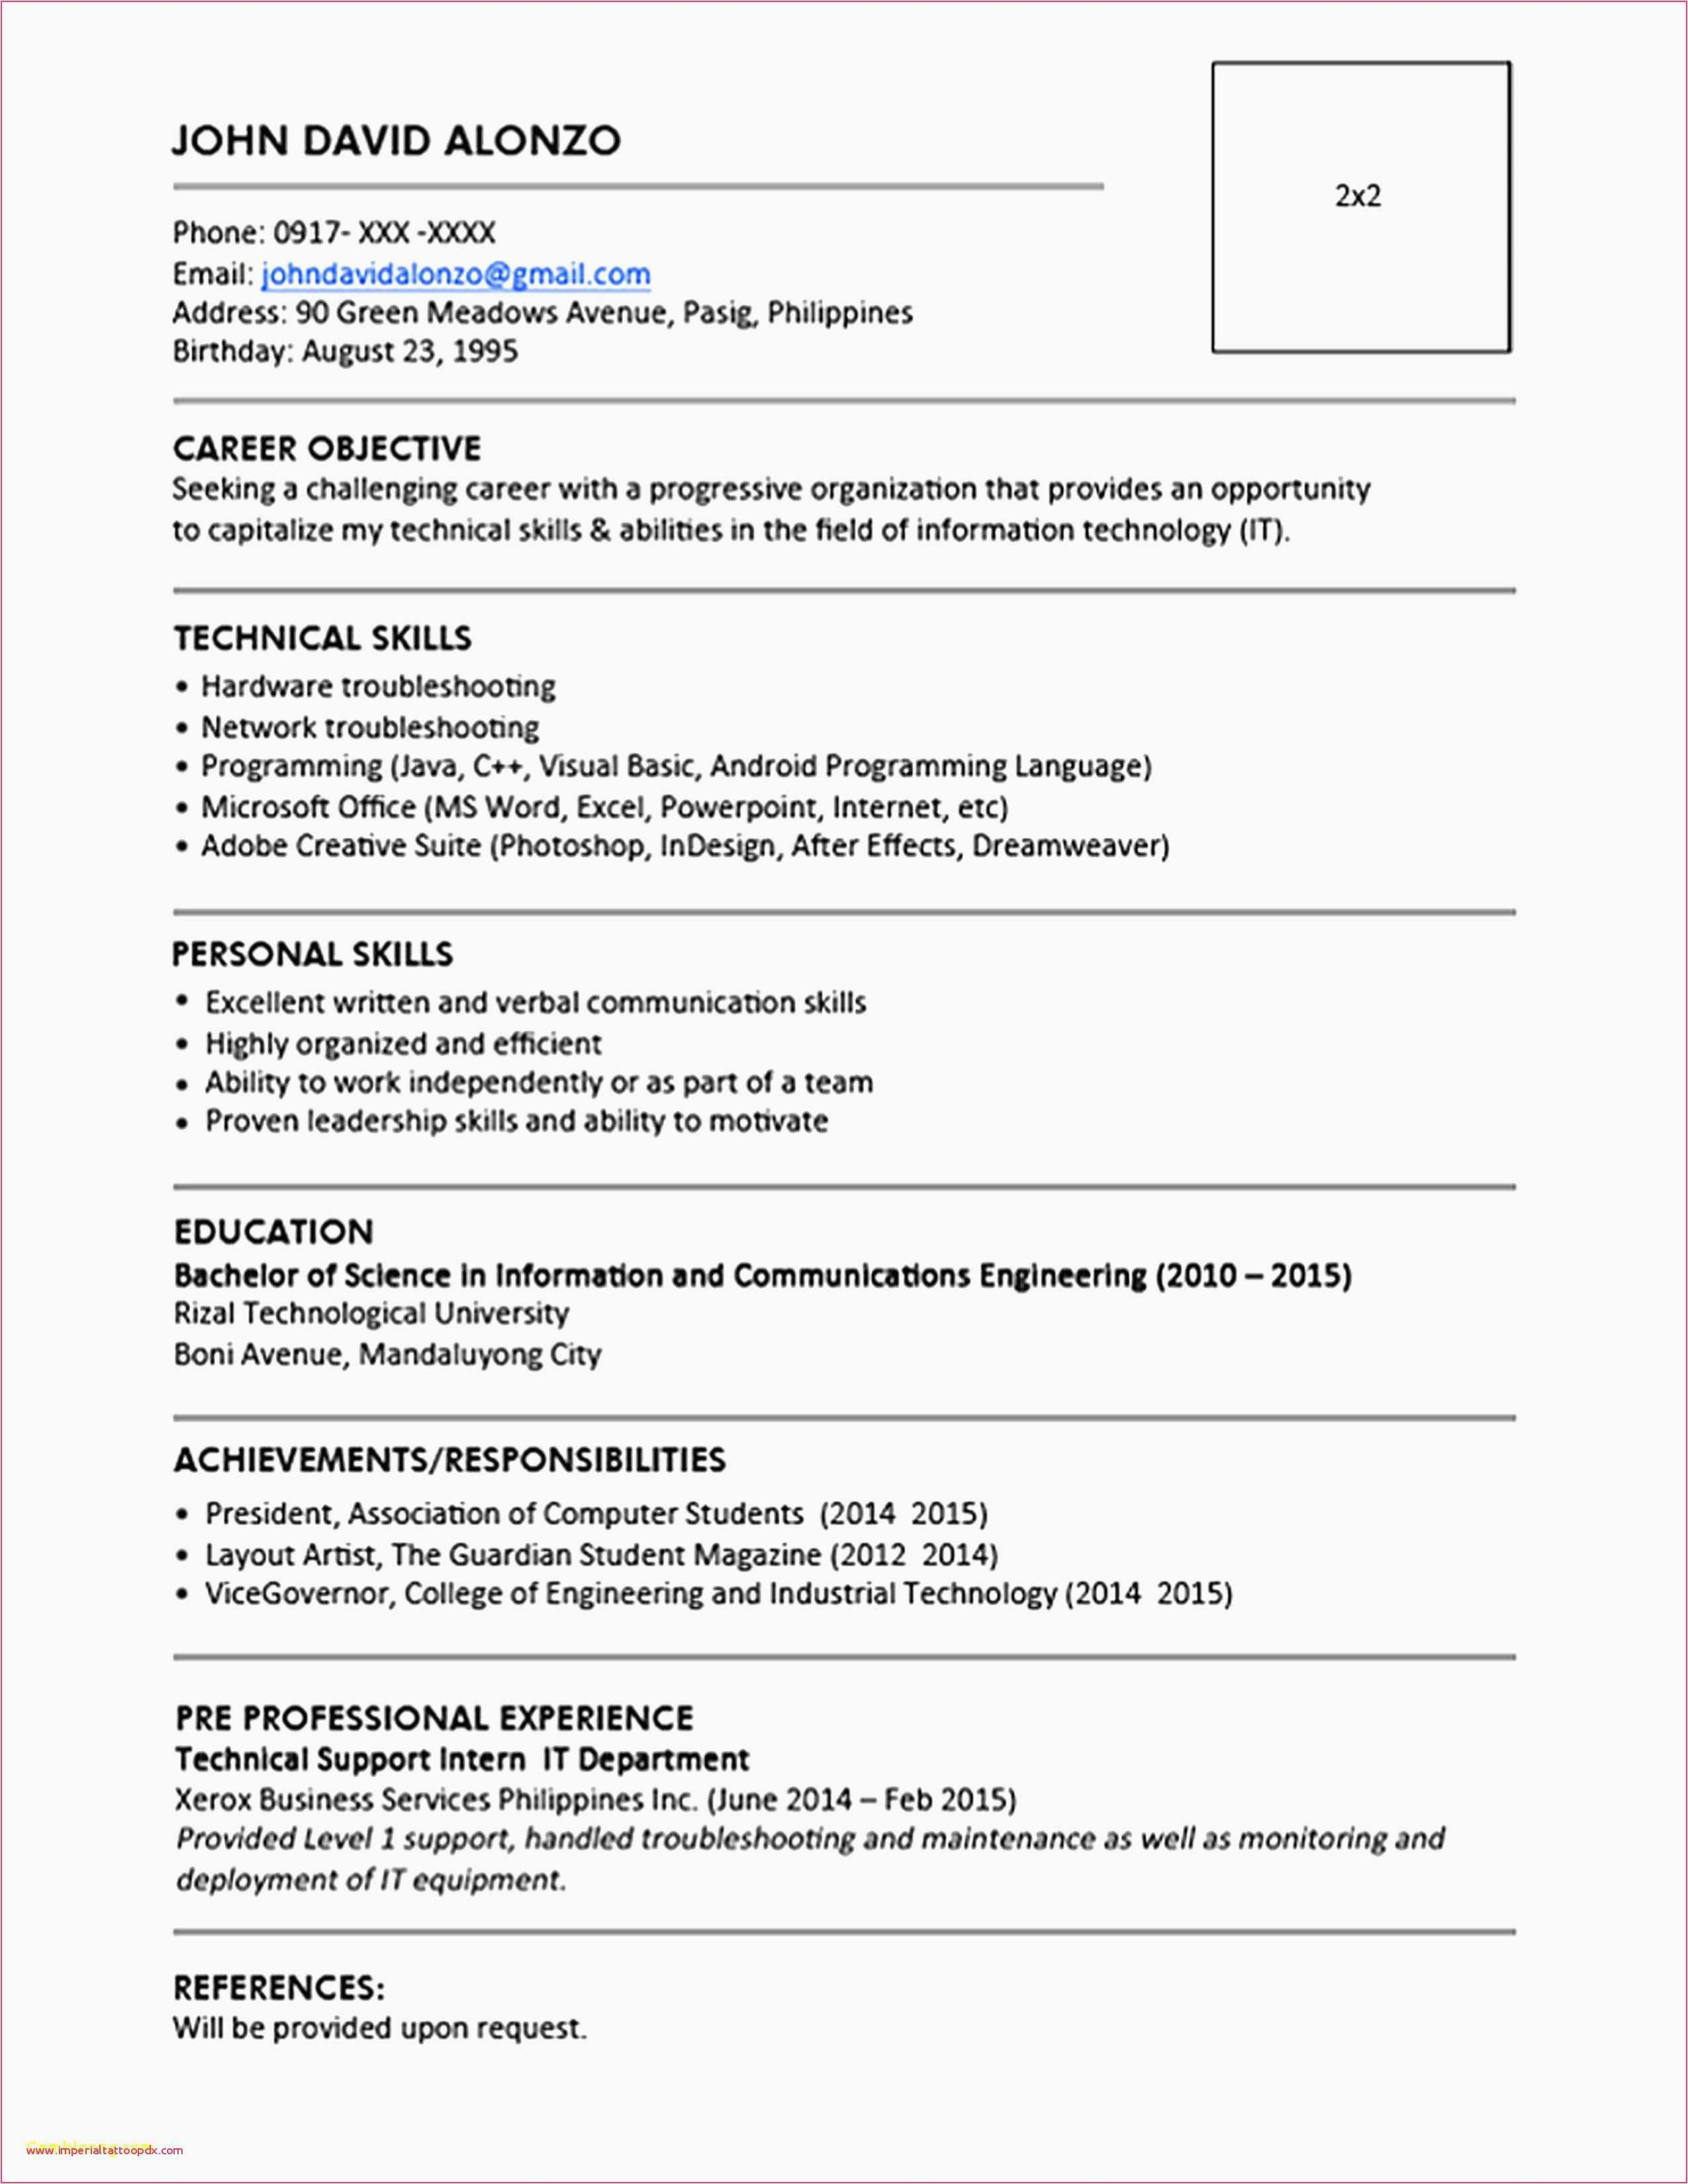 Word Resume Templates - 21 Best Cancellation Policy Template format